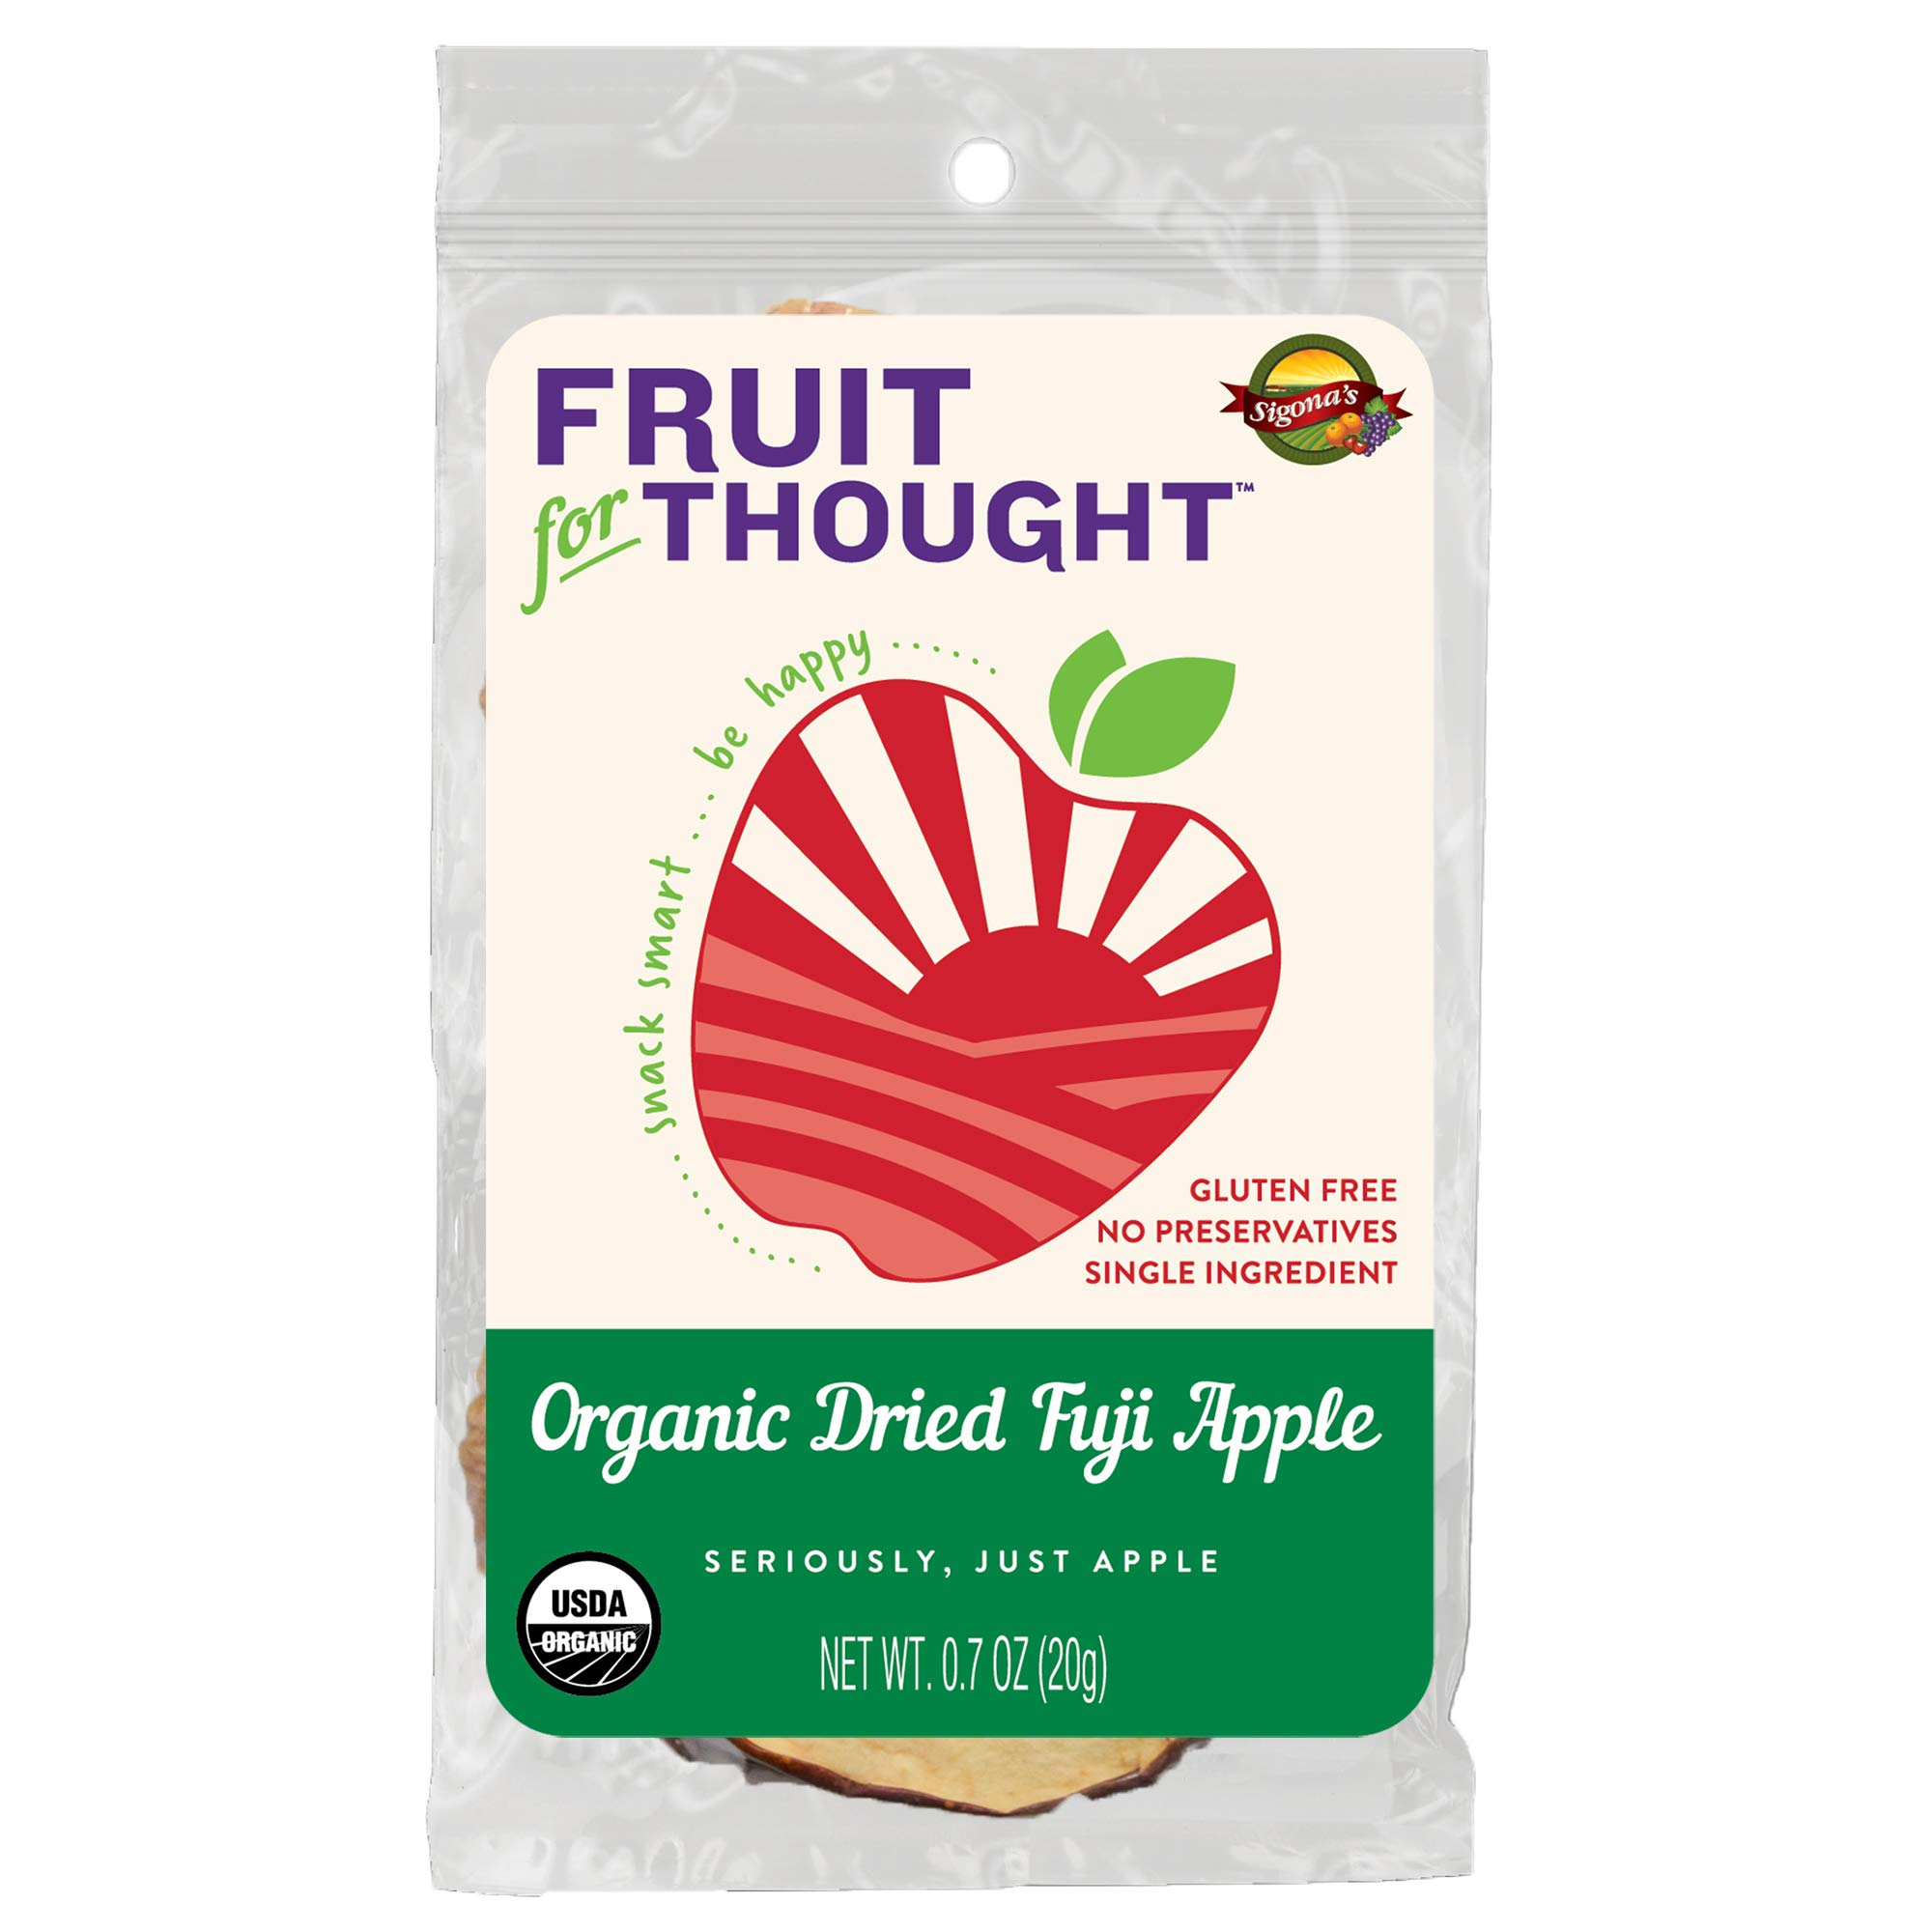 USA Grown Individually Packed Organic Dried Fuji Apple Slices - Seriously Just Fuji Apples, No Added Sugar, No Preservatives - Organic Dried Apples In On-The-Go Individual Snack Packs (Pack of 10) by Fruit For Thought